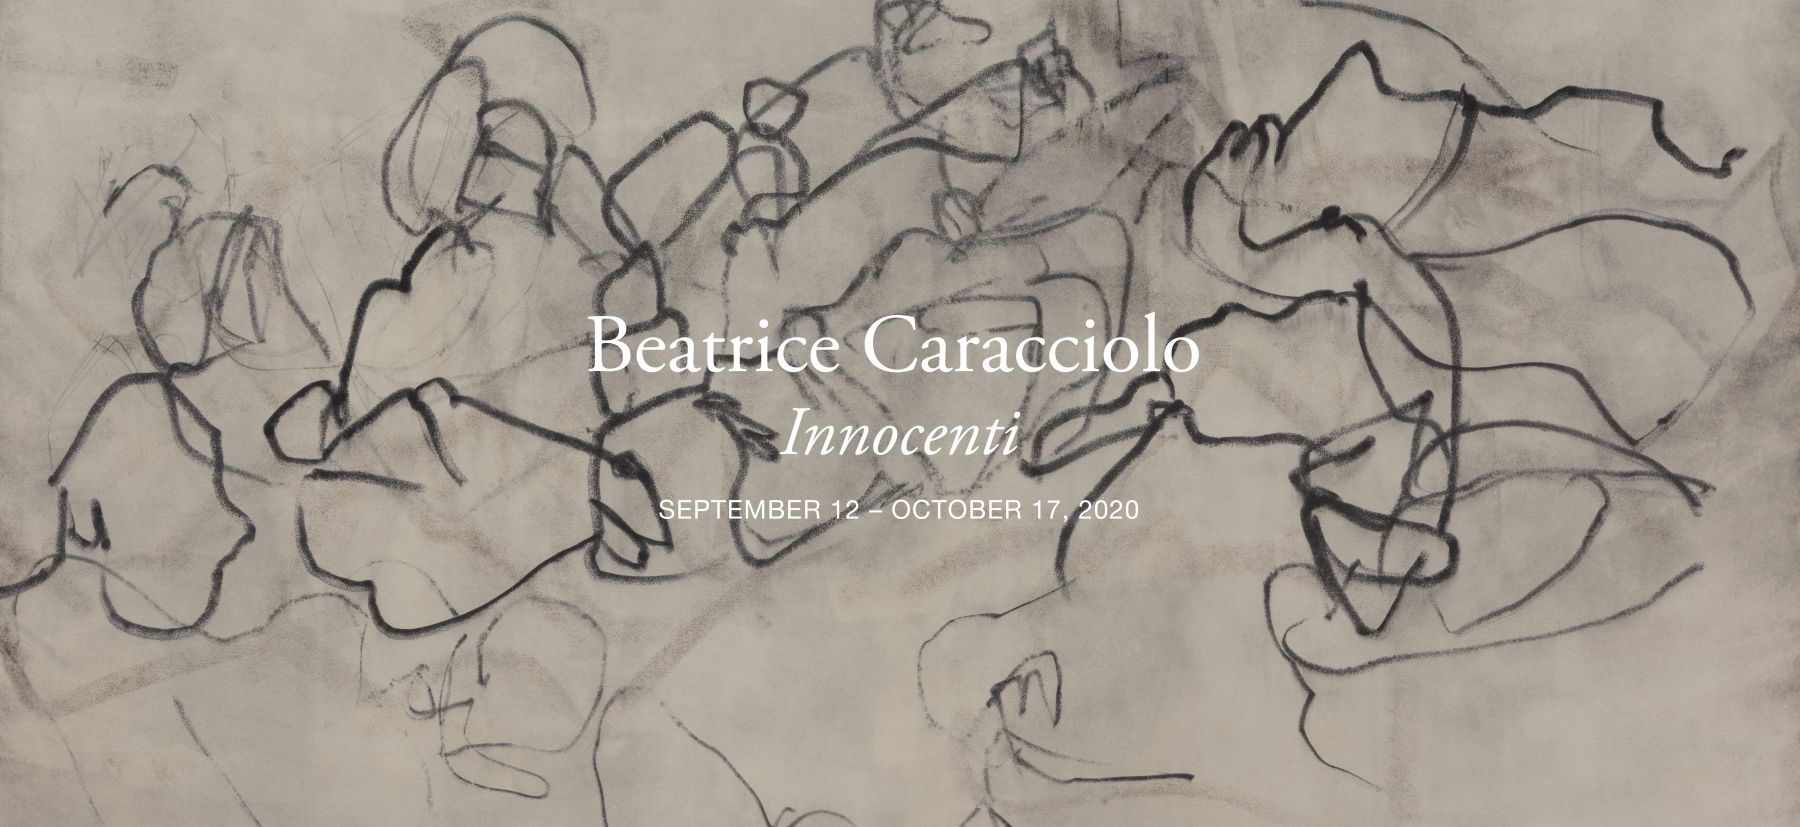 Beatrice Caracciolo: Innocenti, Paula Cooper Gallery, New York, NY, September 12 - October 17, 2020